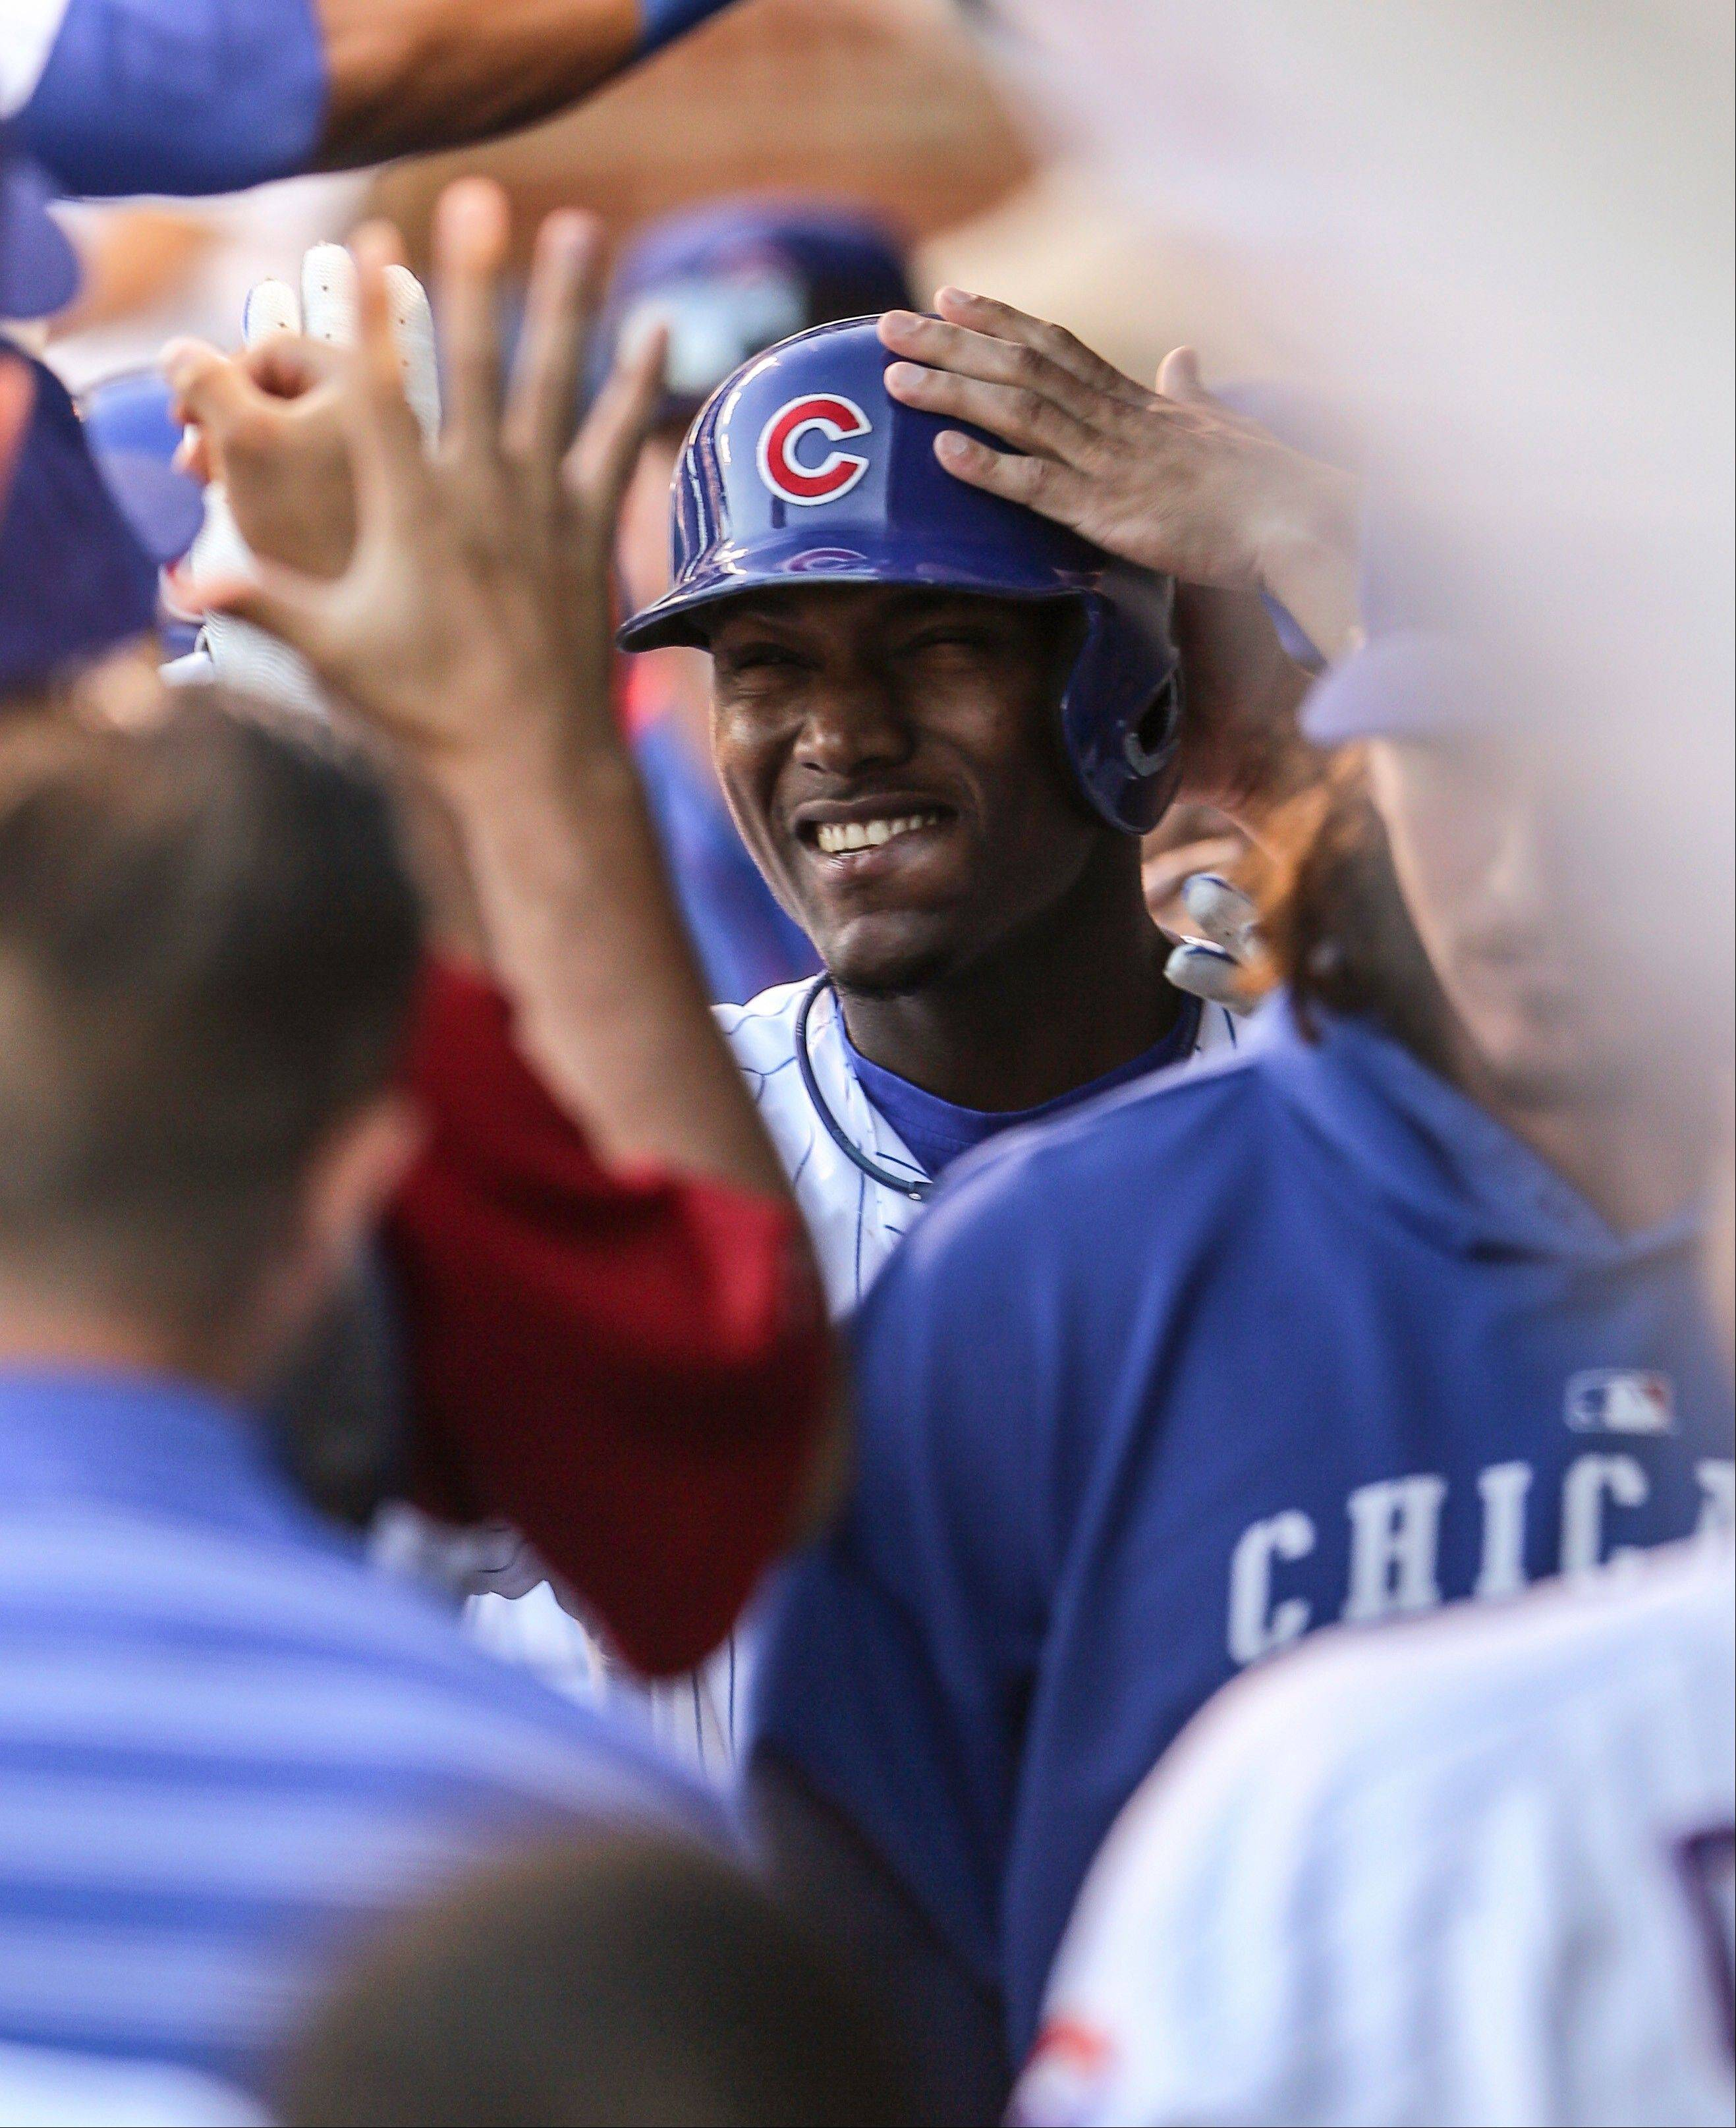 The Cubs' Junior Lake smiles in the dugout after hitting a solo home run in the first inning against the Dodgers on Thursday night.